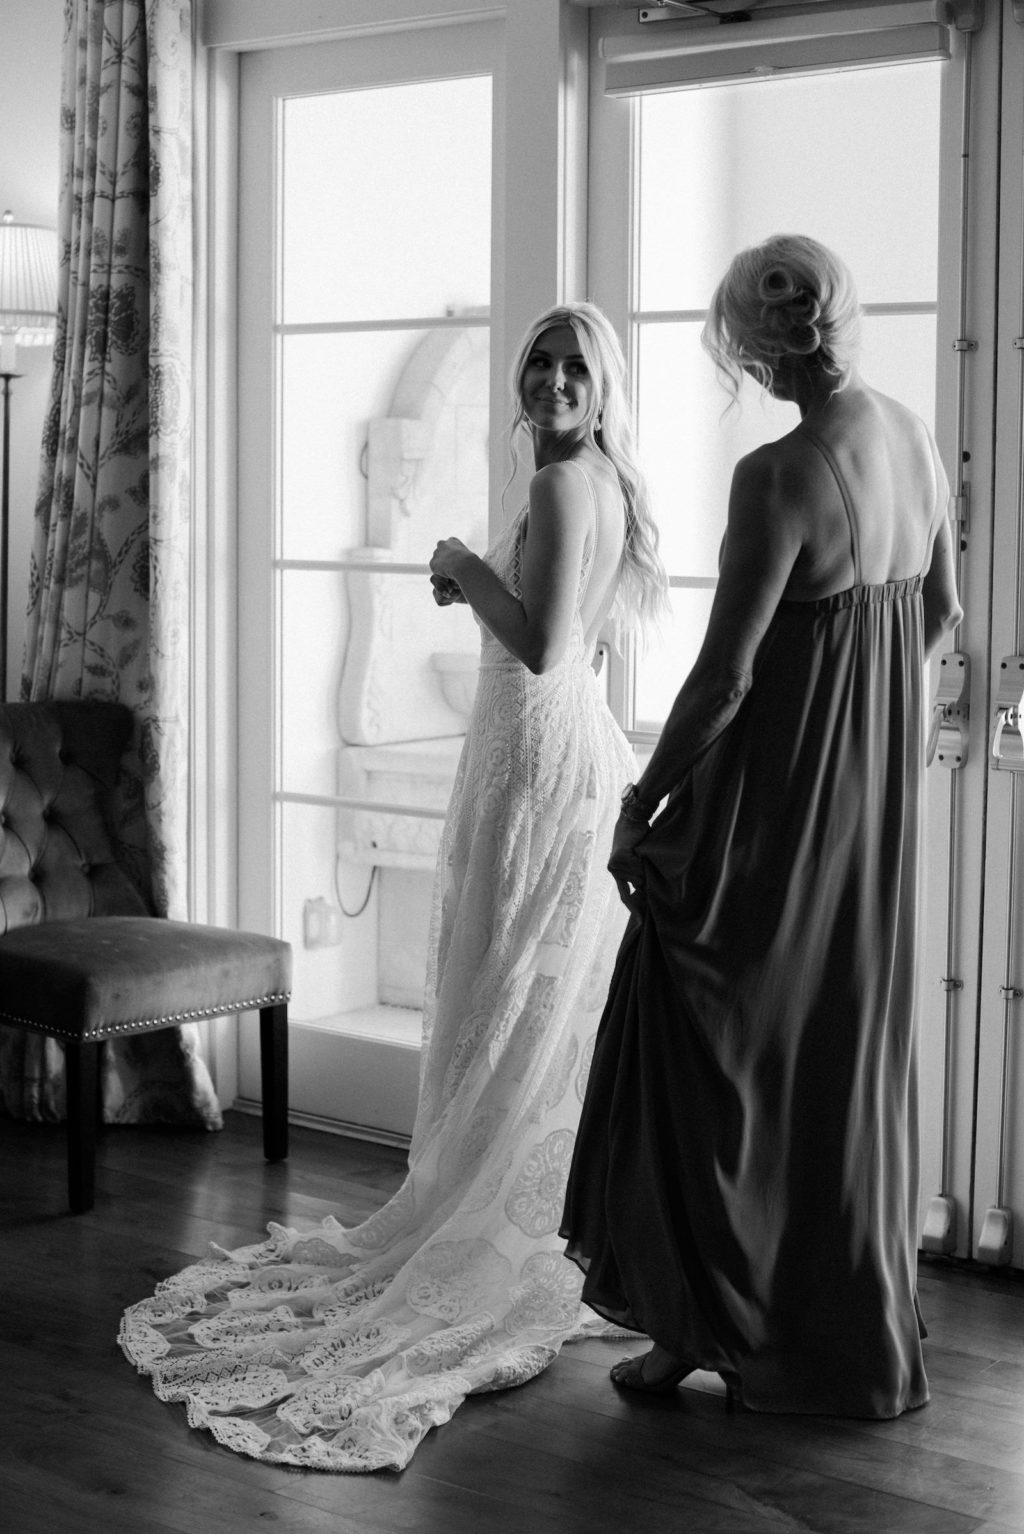 Black and White Photo of Bride in Lace Wedding Dress Getting Wedding Ready